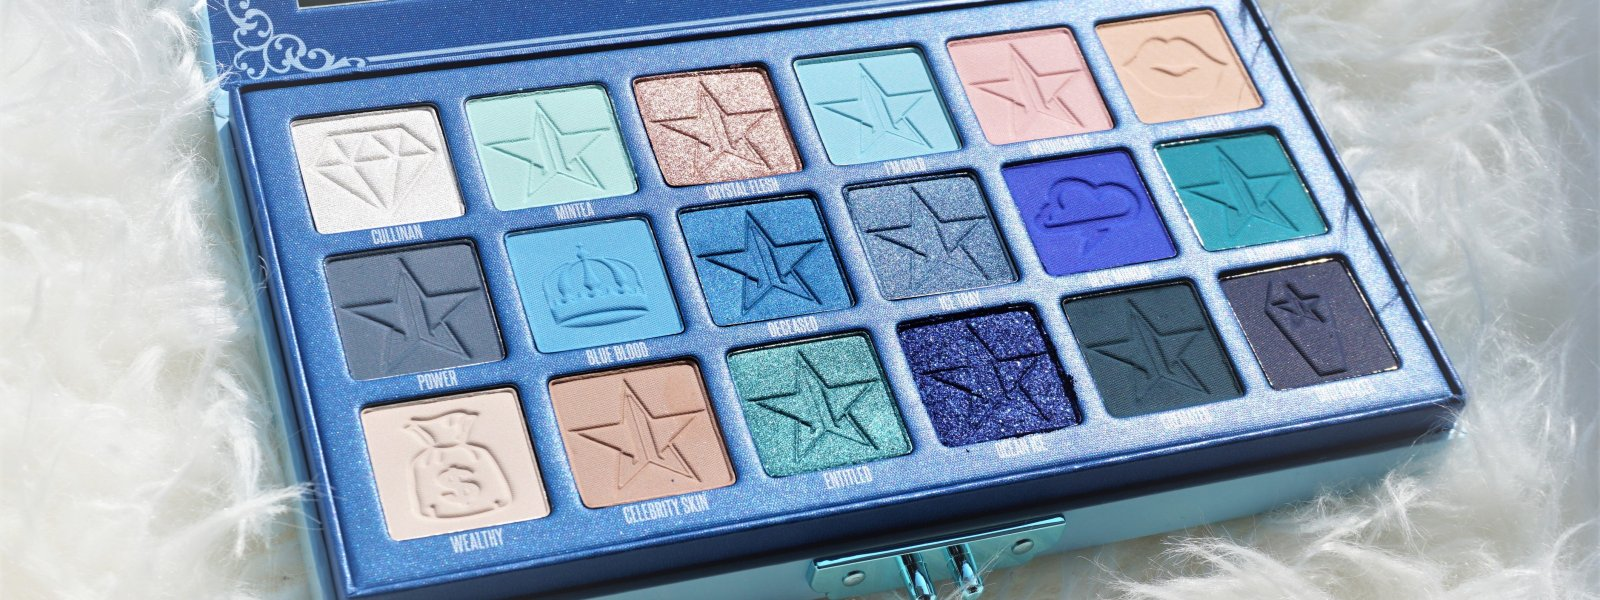 Jeffree Star Cosmetics Blue Blood Palette | Review